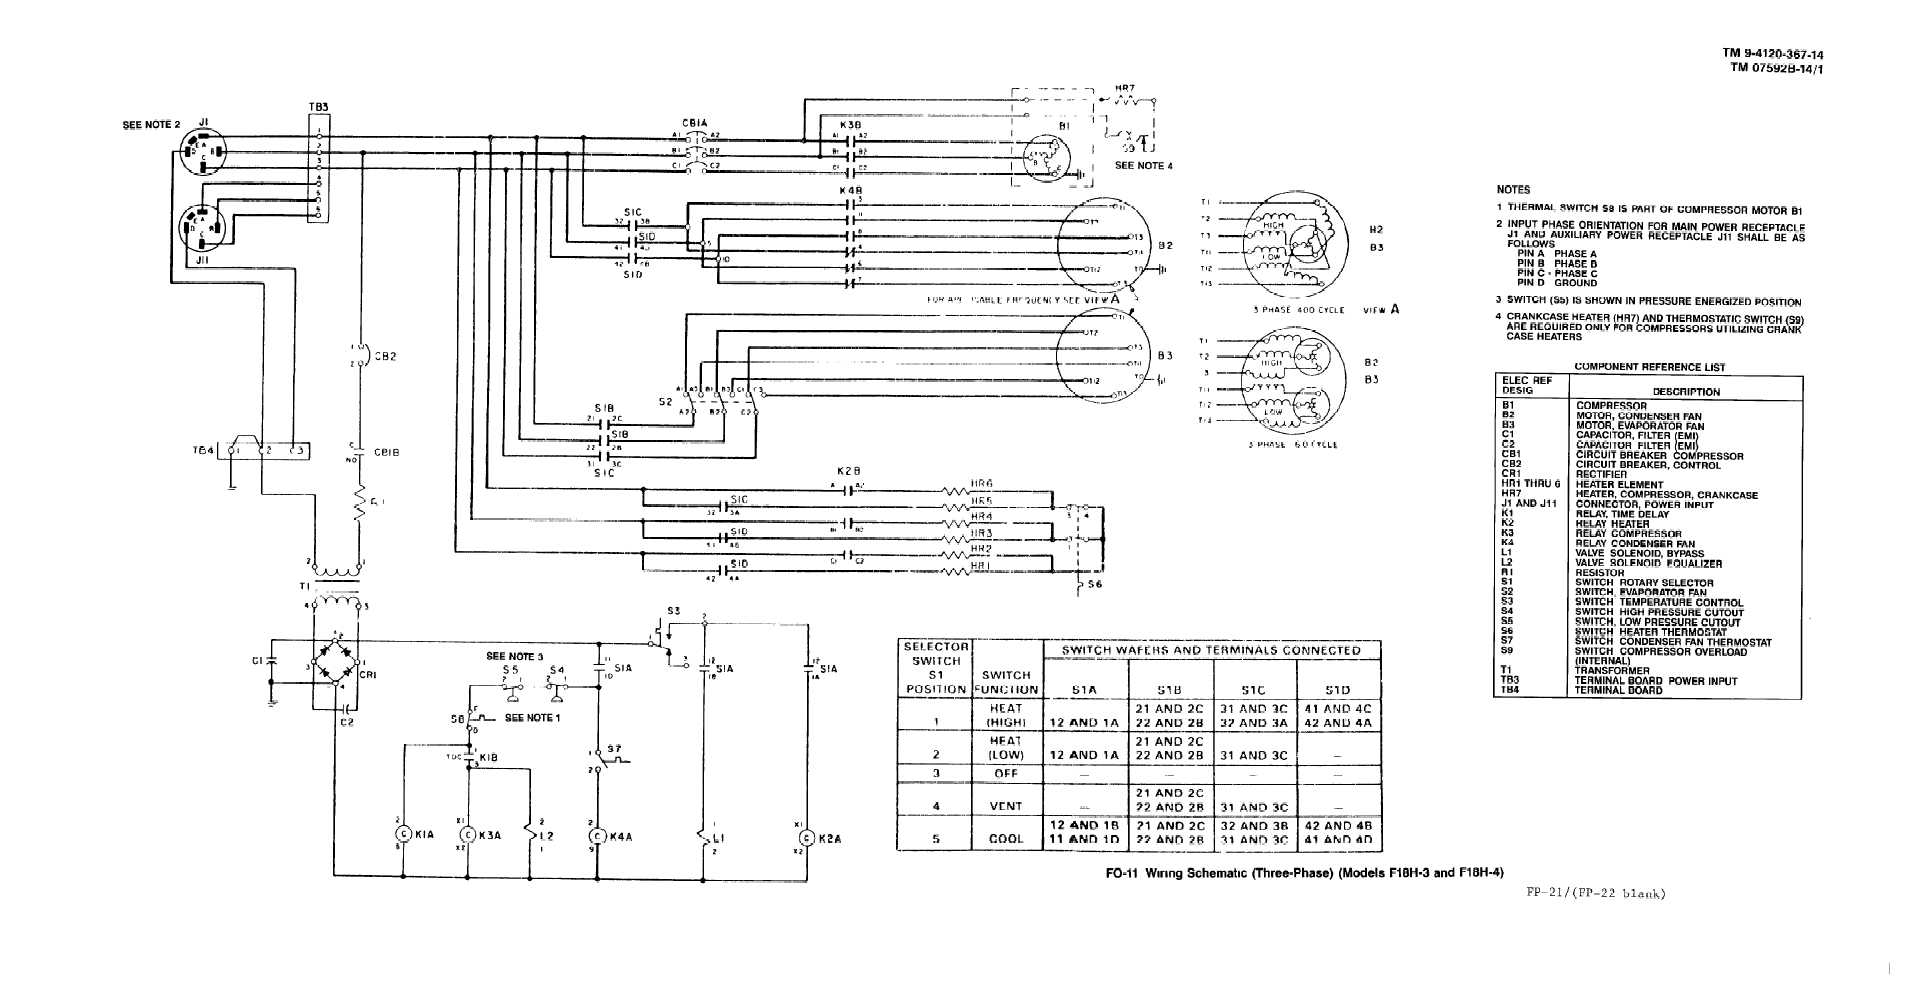 FO-11. Wiring Schematic (Three Phase) (Model F18H-3 and F18H-4)